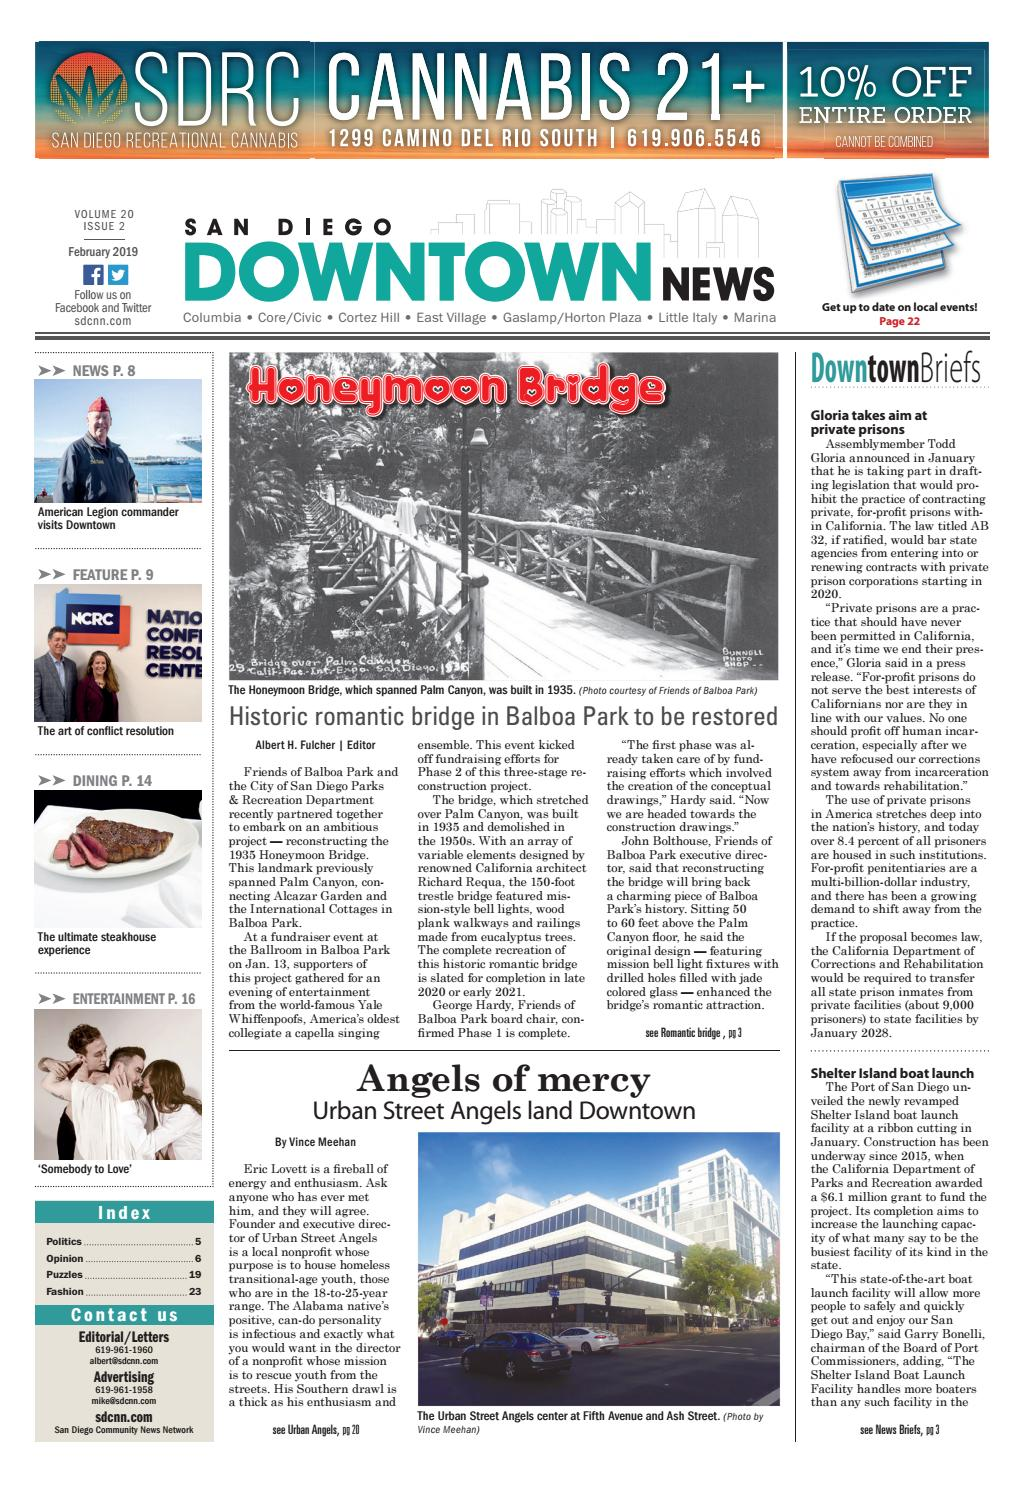 San Diego Downtown News, Vol  20, Issue 2 by SDCNN - issuu